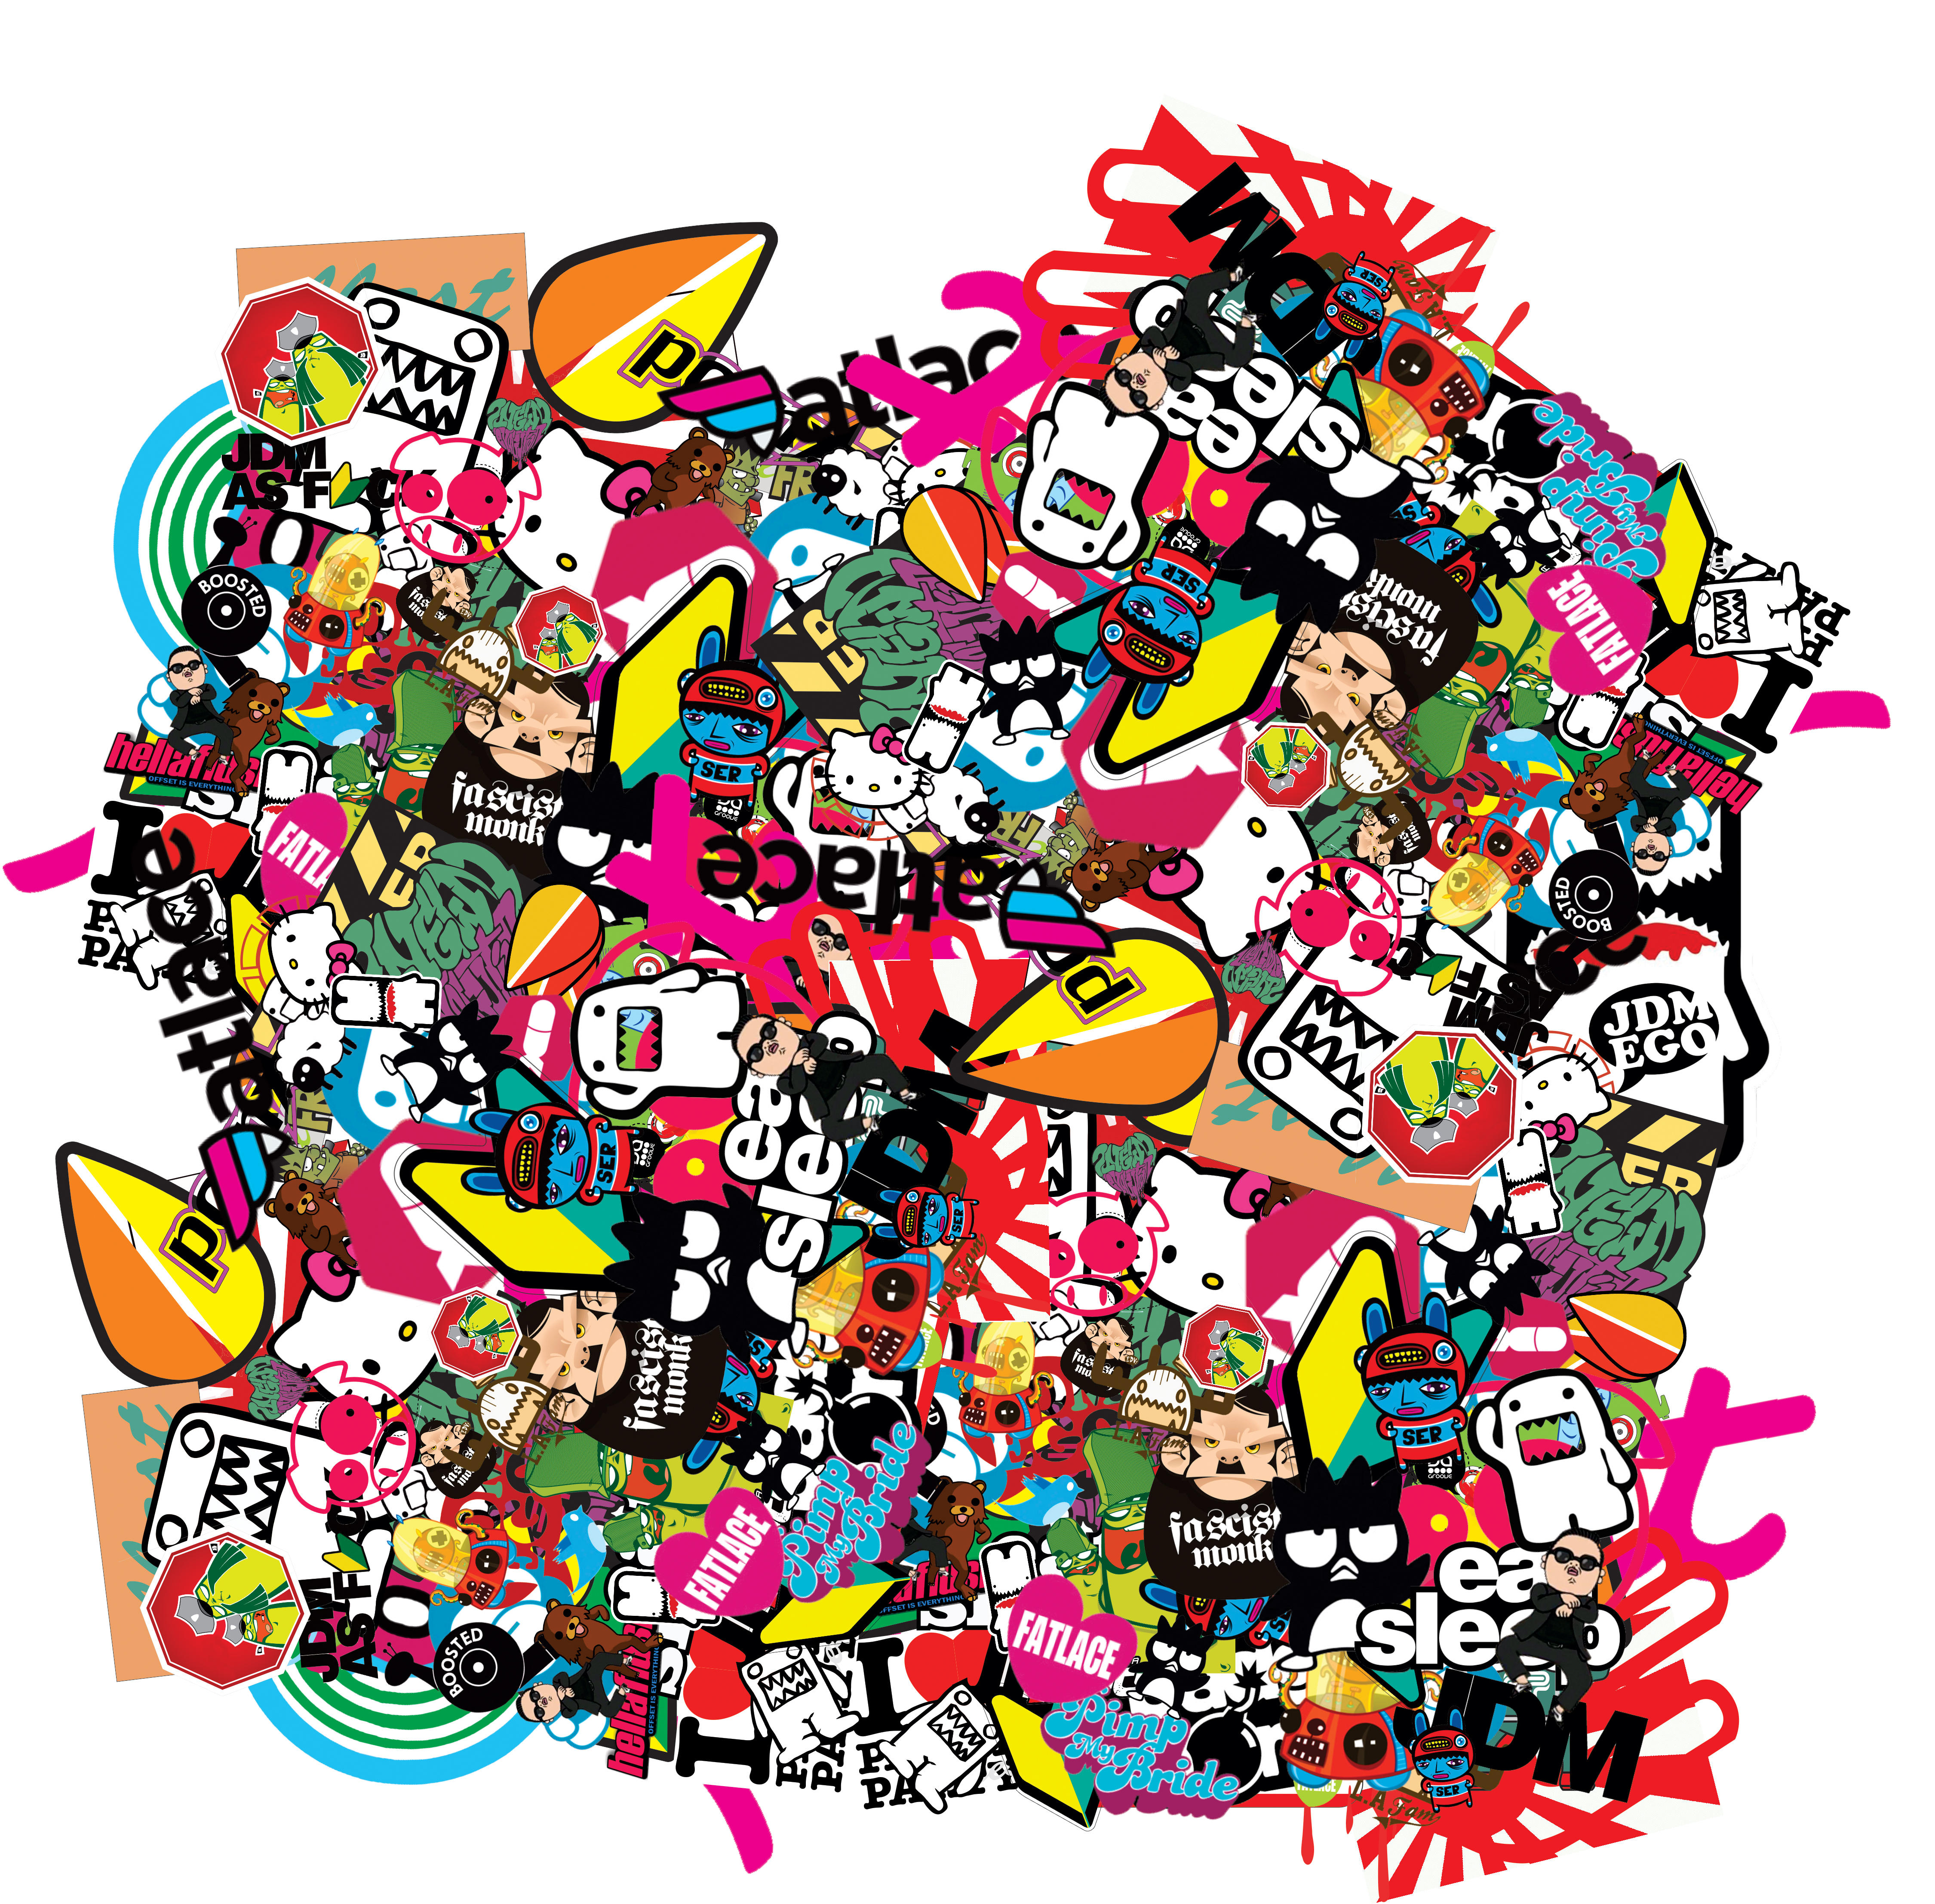 sticker bomb wallpaper cartoon - photo #12